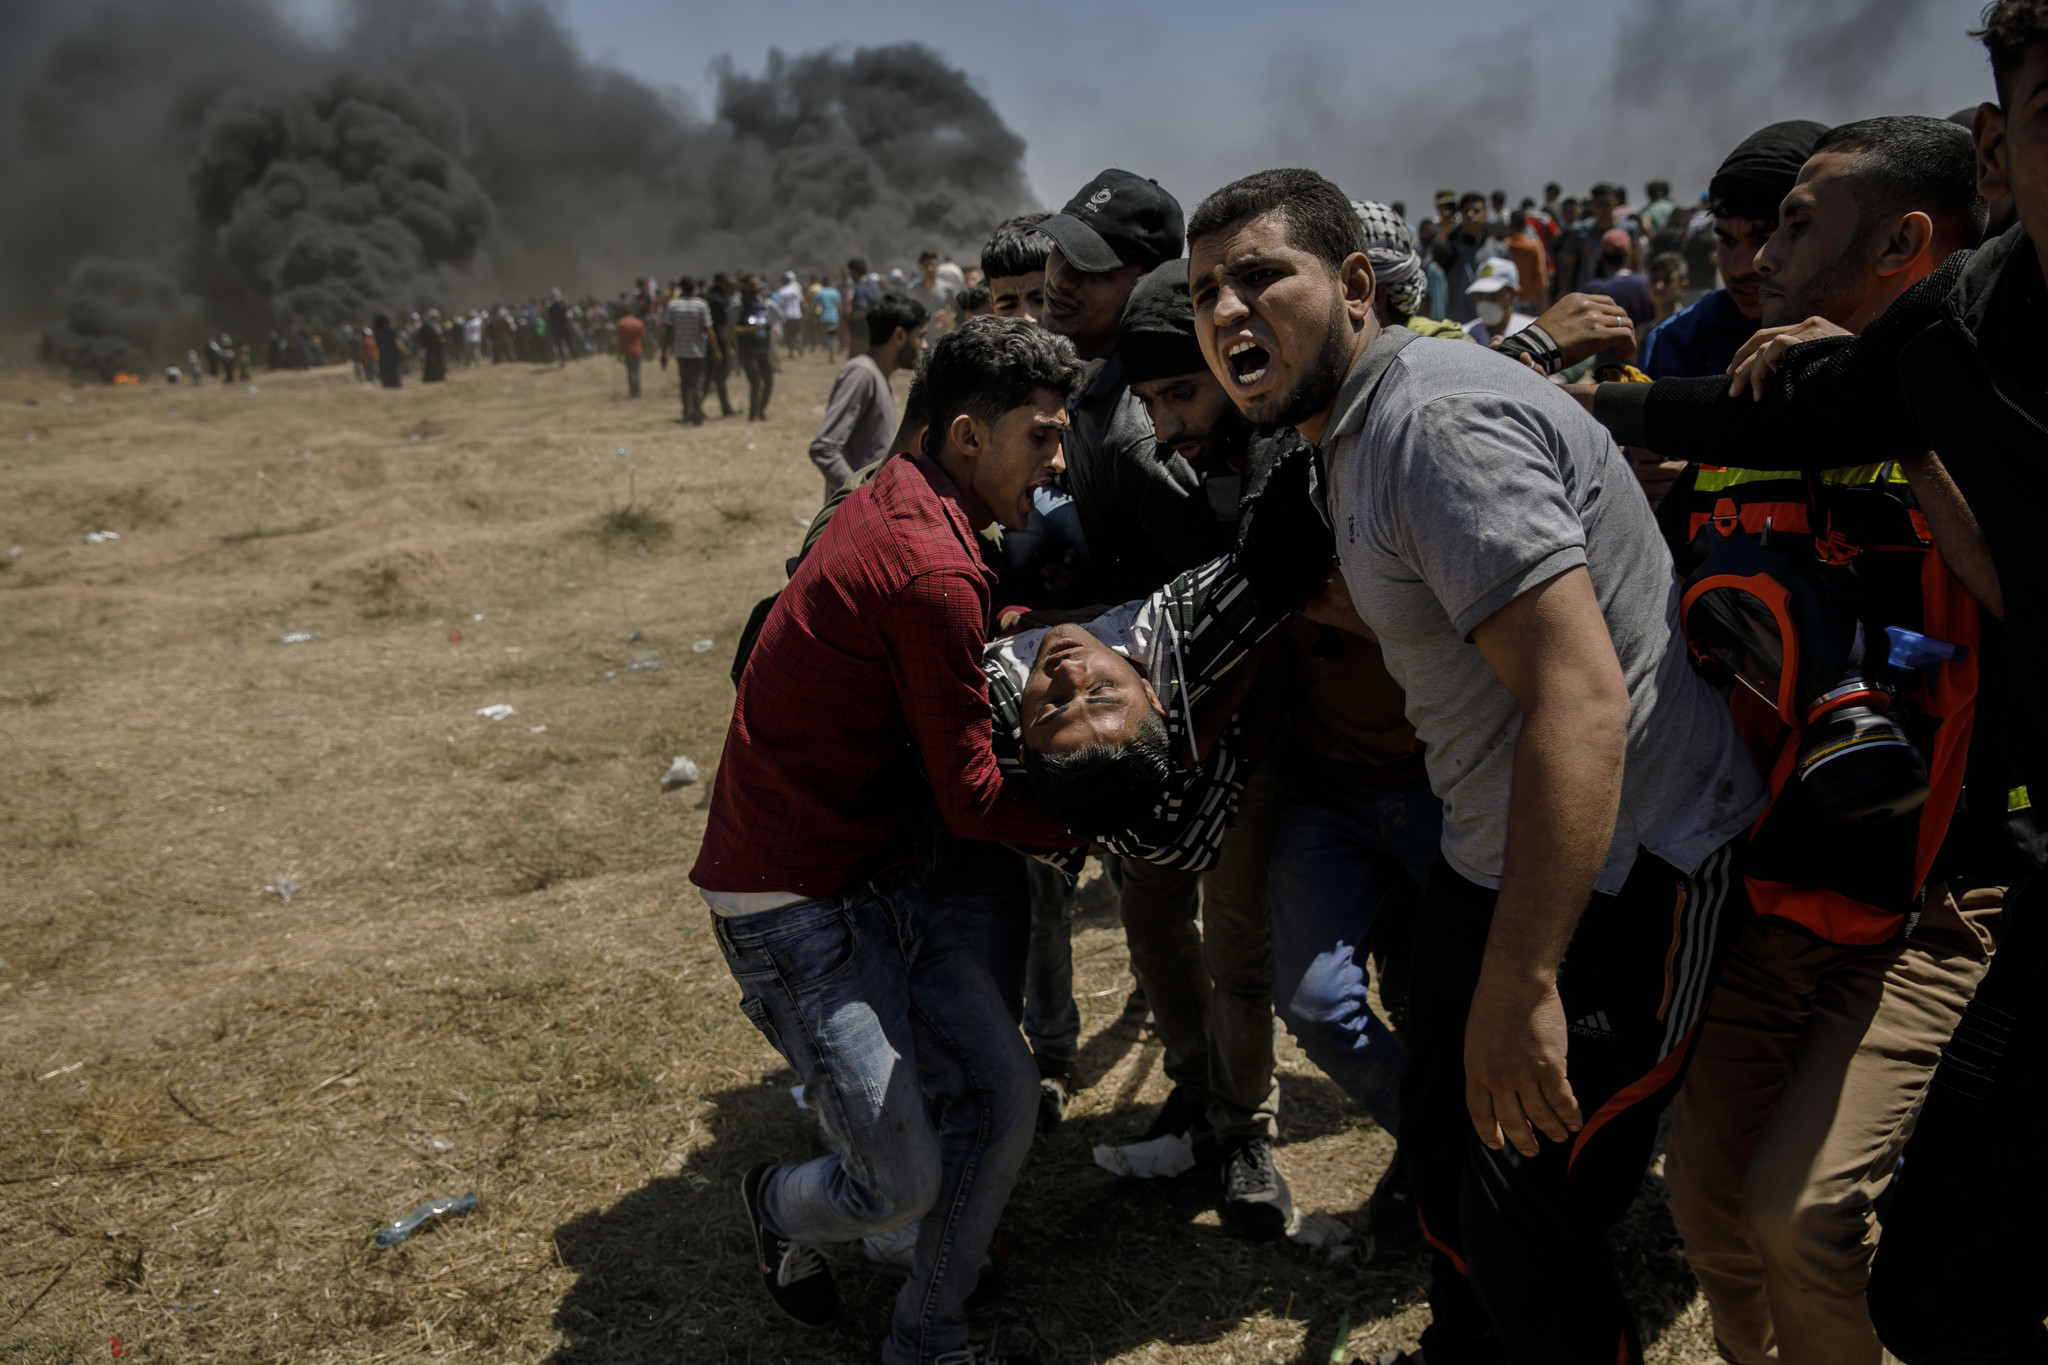 GAZA CITY, GAZA — MONDAY, MAY 14, 2018: Protesters carry away the wounded shot by Israeli forces as